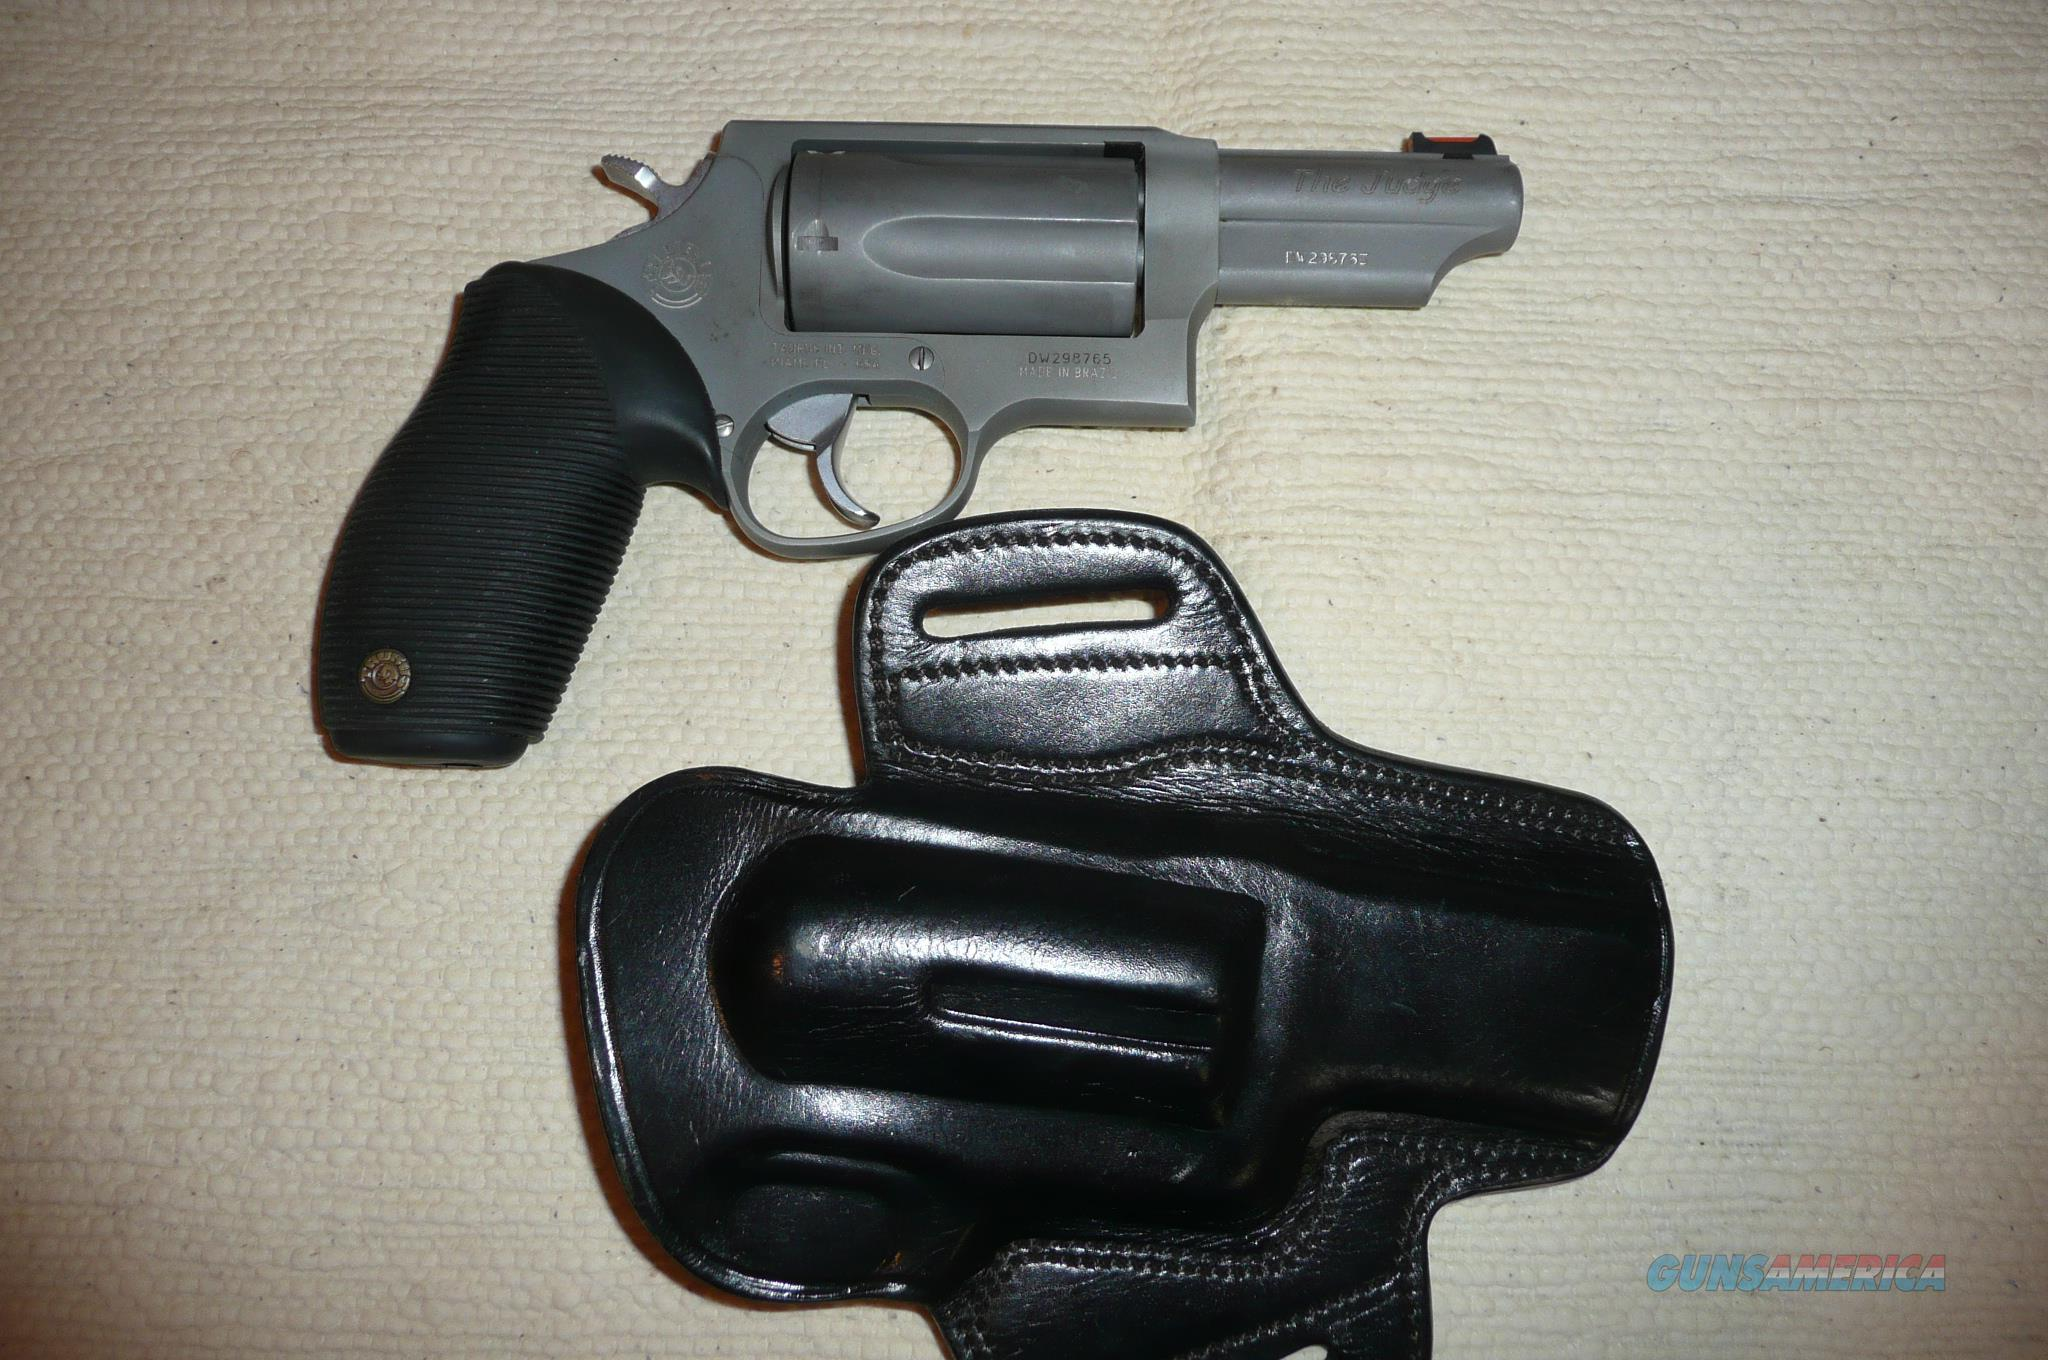 TAURUS JUDGE 410 GA/45 .ACP (the point and clic... for sale